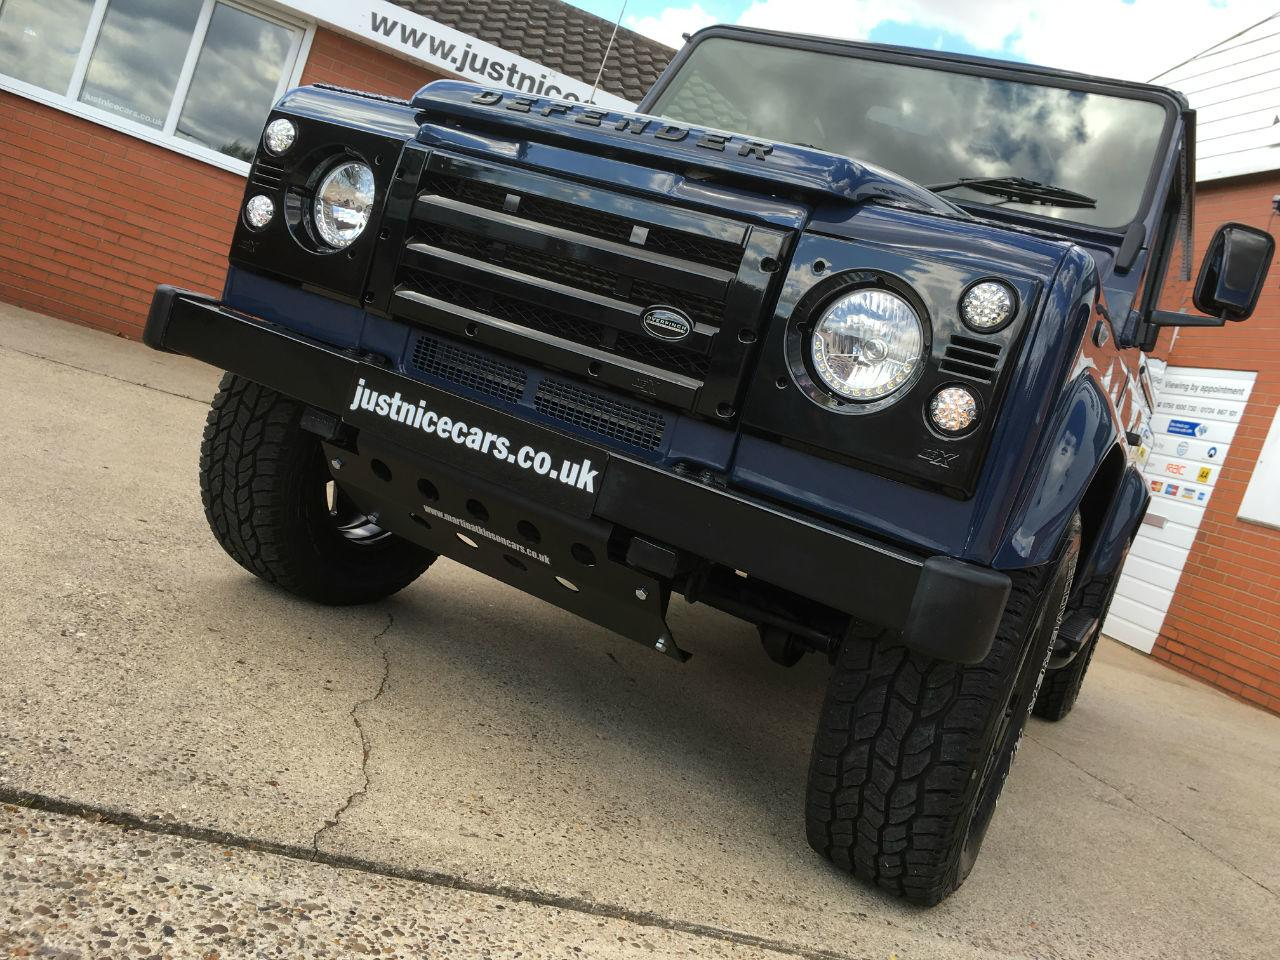 Land Rover Defender Hard Top 2.2 TDCi RS Edition Four Wheel Drive Diesel Tamar Blue